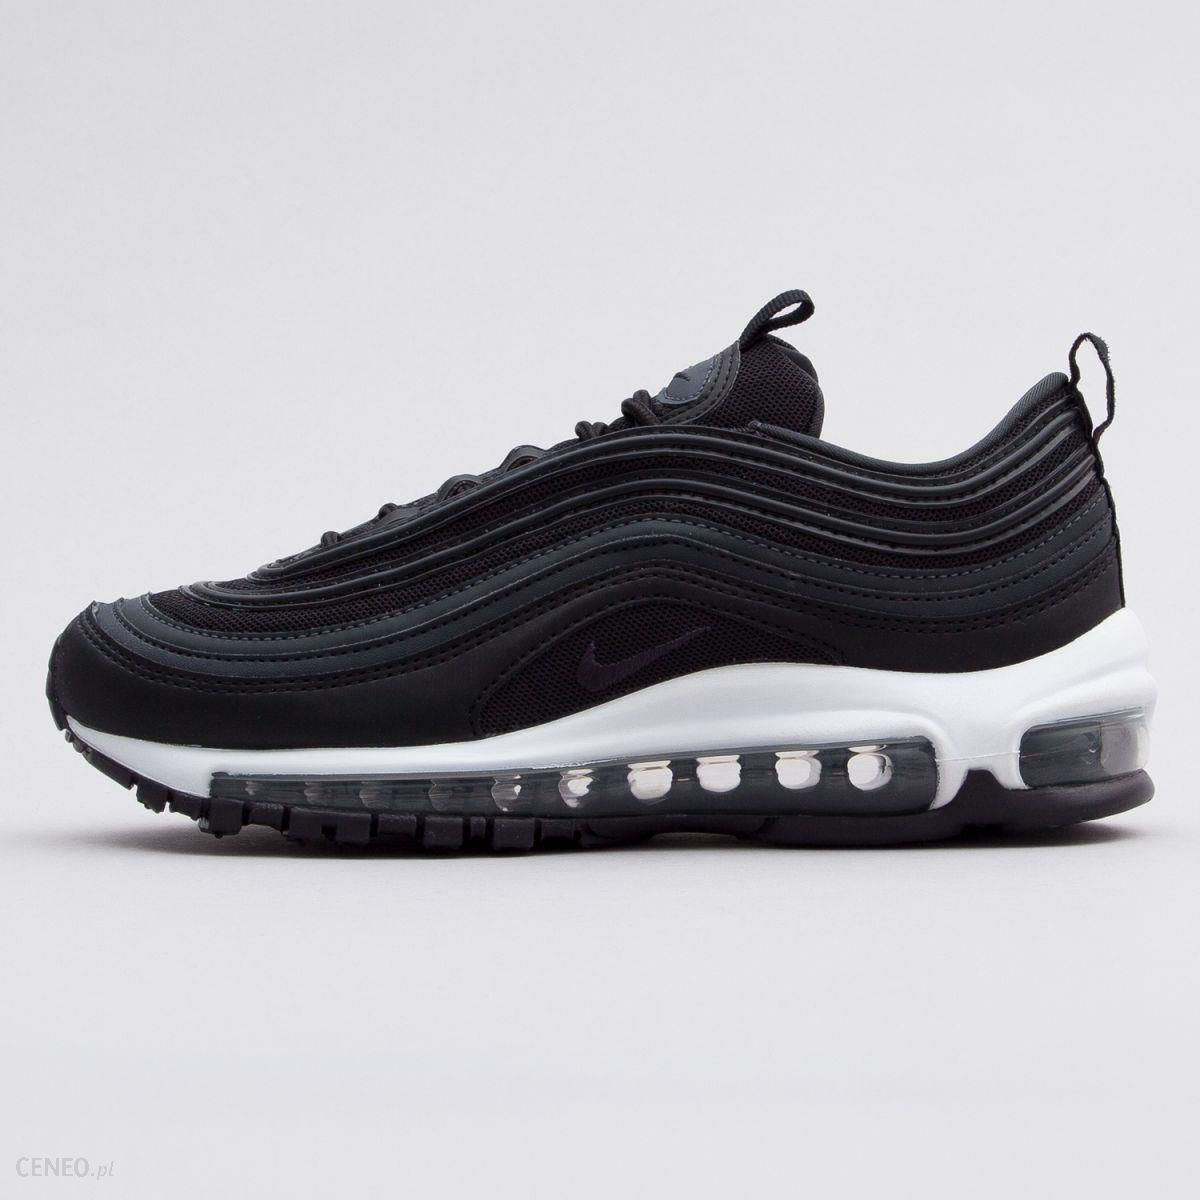 Nike WMNS AIR MAX 97 921733 011 Ceny i opinie Ceneo.pl